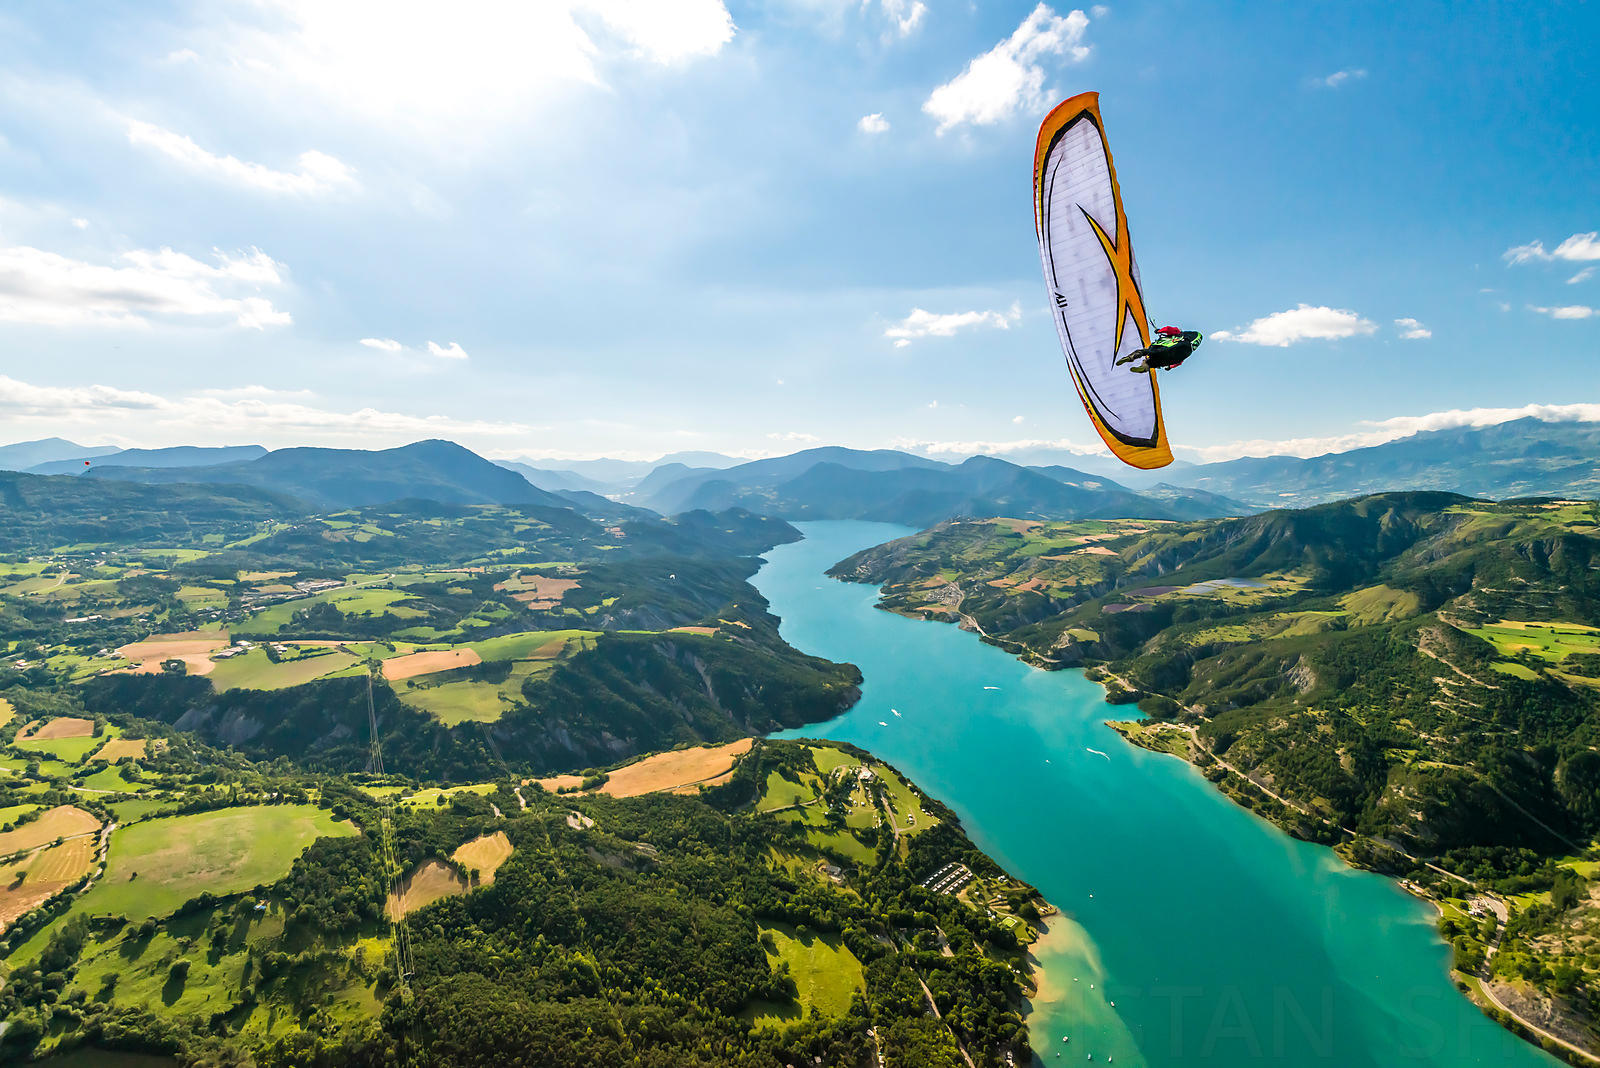 Wing-Over lac de Serre-Poncon with Michael Regnier